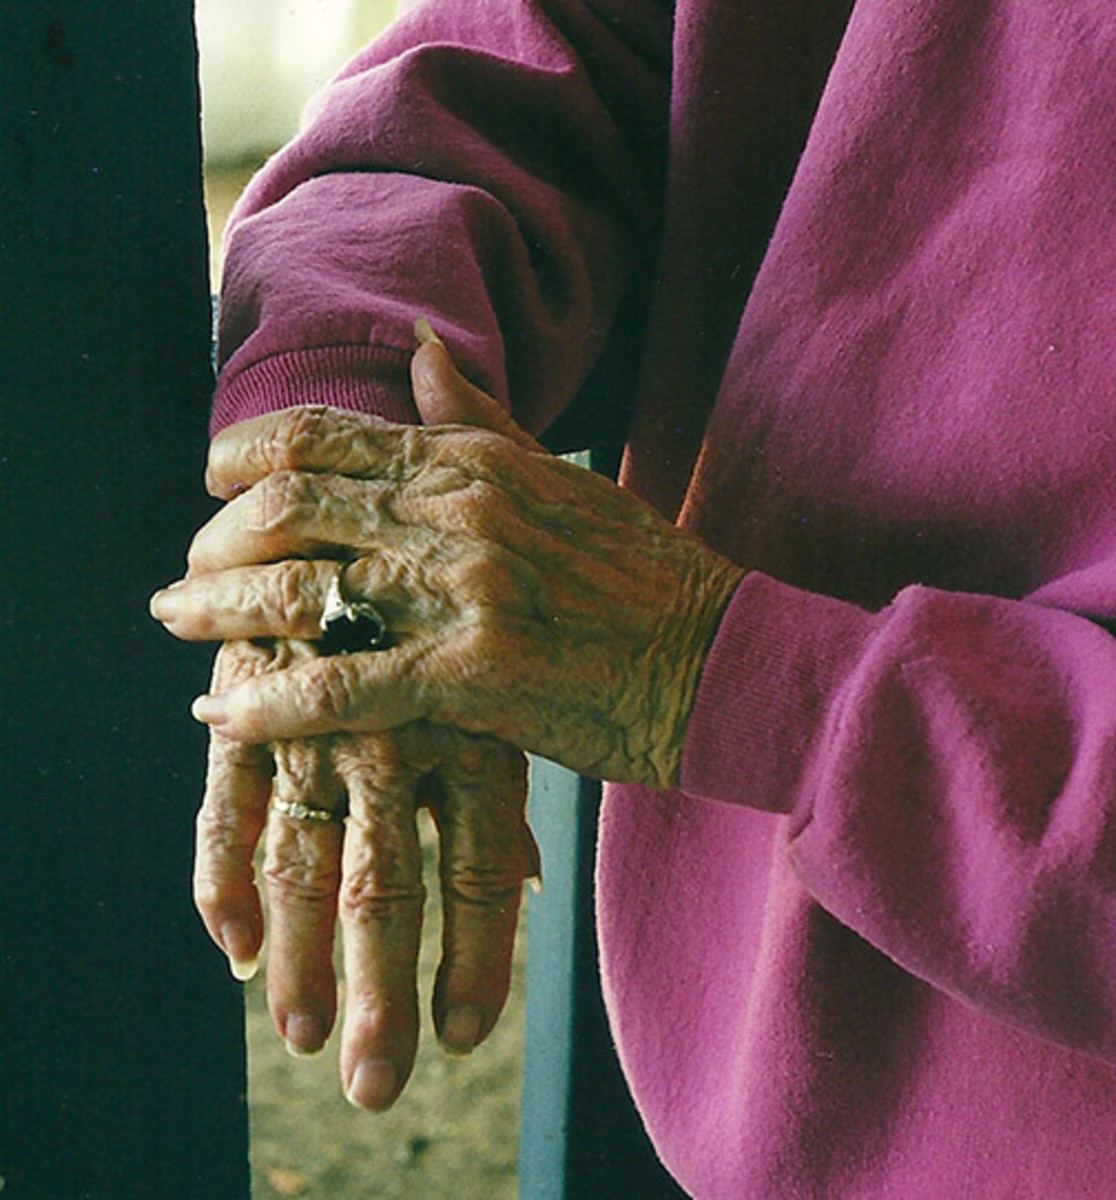 Her whole life written in her hands.